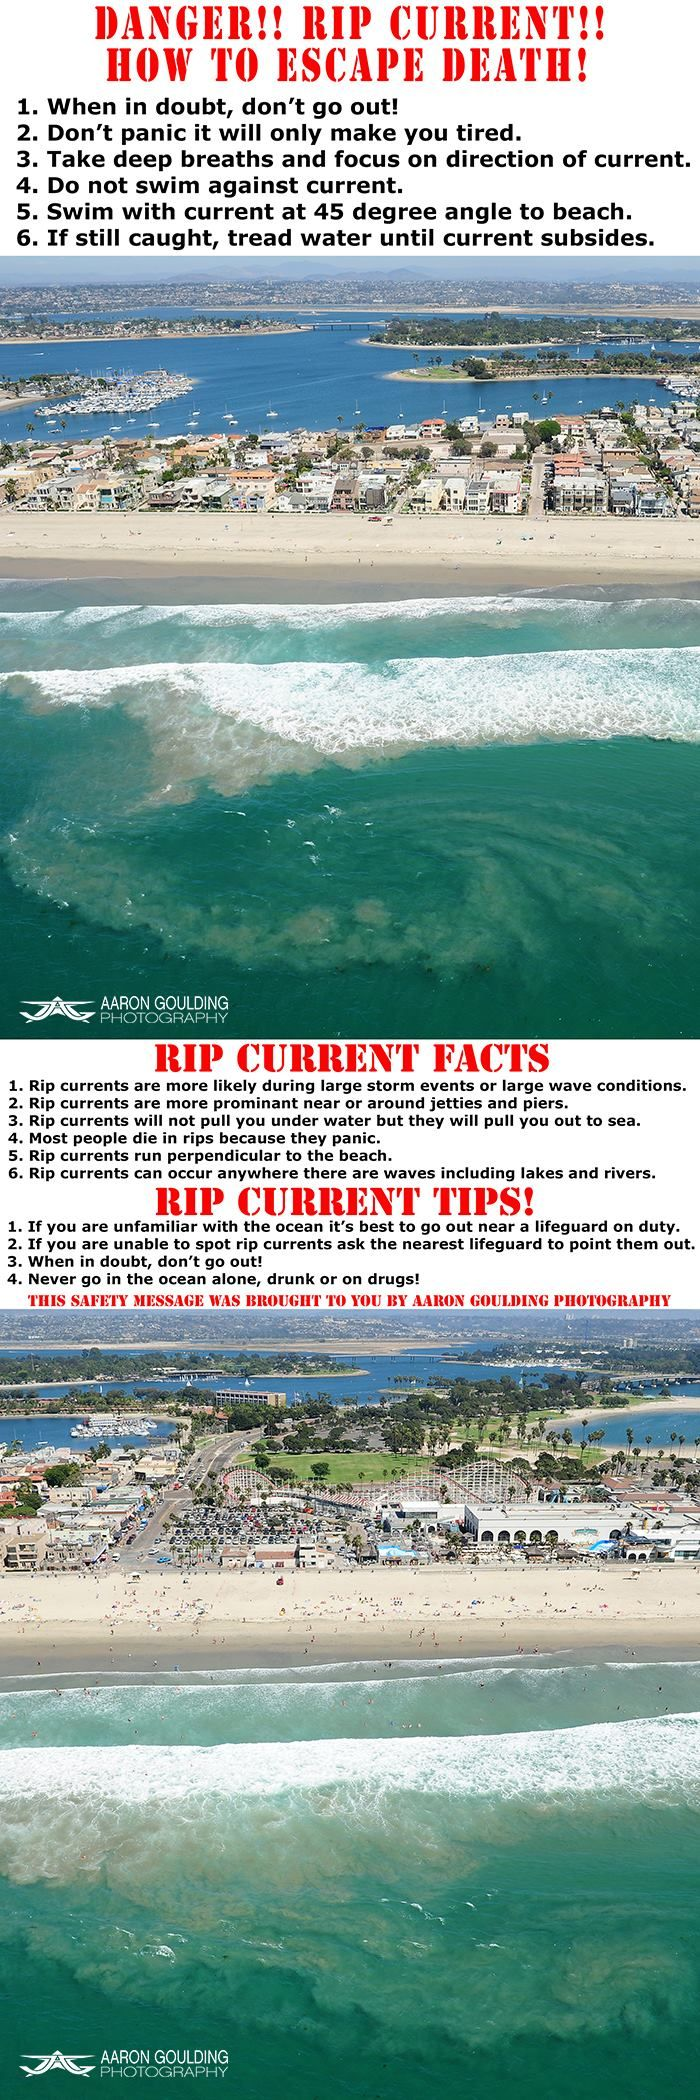 A  ****IMPORTANT SAFETY MESSAGE**** **PIN to SAVE A LIFE!!**  Lives are lost every year due to rip currents. Most people are first timers getting their feet wet and falling in love with the ocean just like we did. If only they knew some facts and tips that could have helped save their lives...  Save a life and post this to your wall!!  SHARESHARESHARESHARESHARESHARESHARESHARE  ***BECAUSE SHARING IS CARING!!*** #AaronGoulding #Photography #ocean #waves #nikon #beach